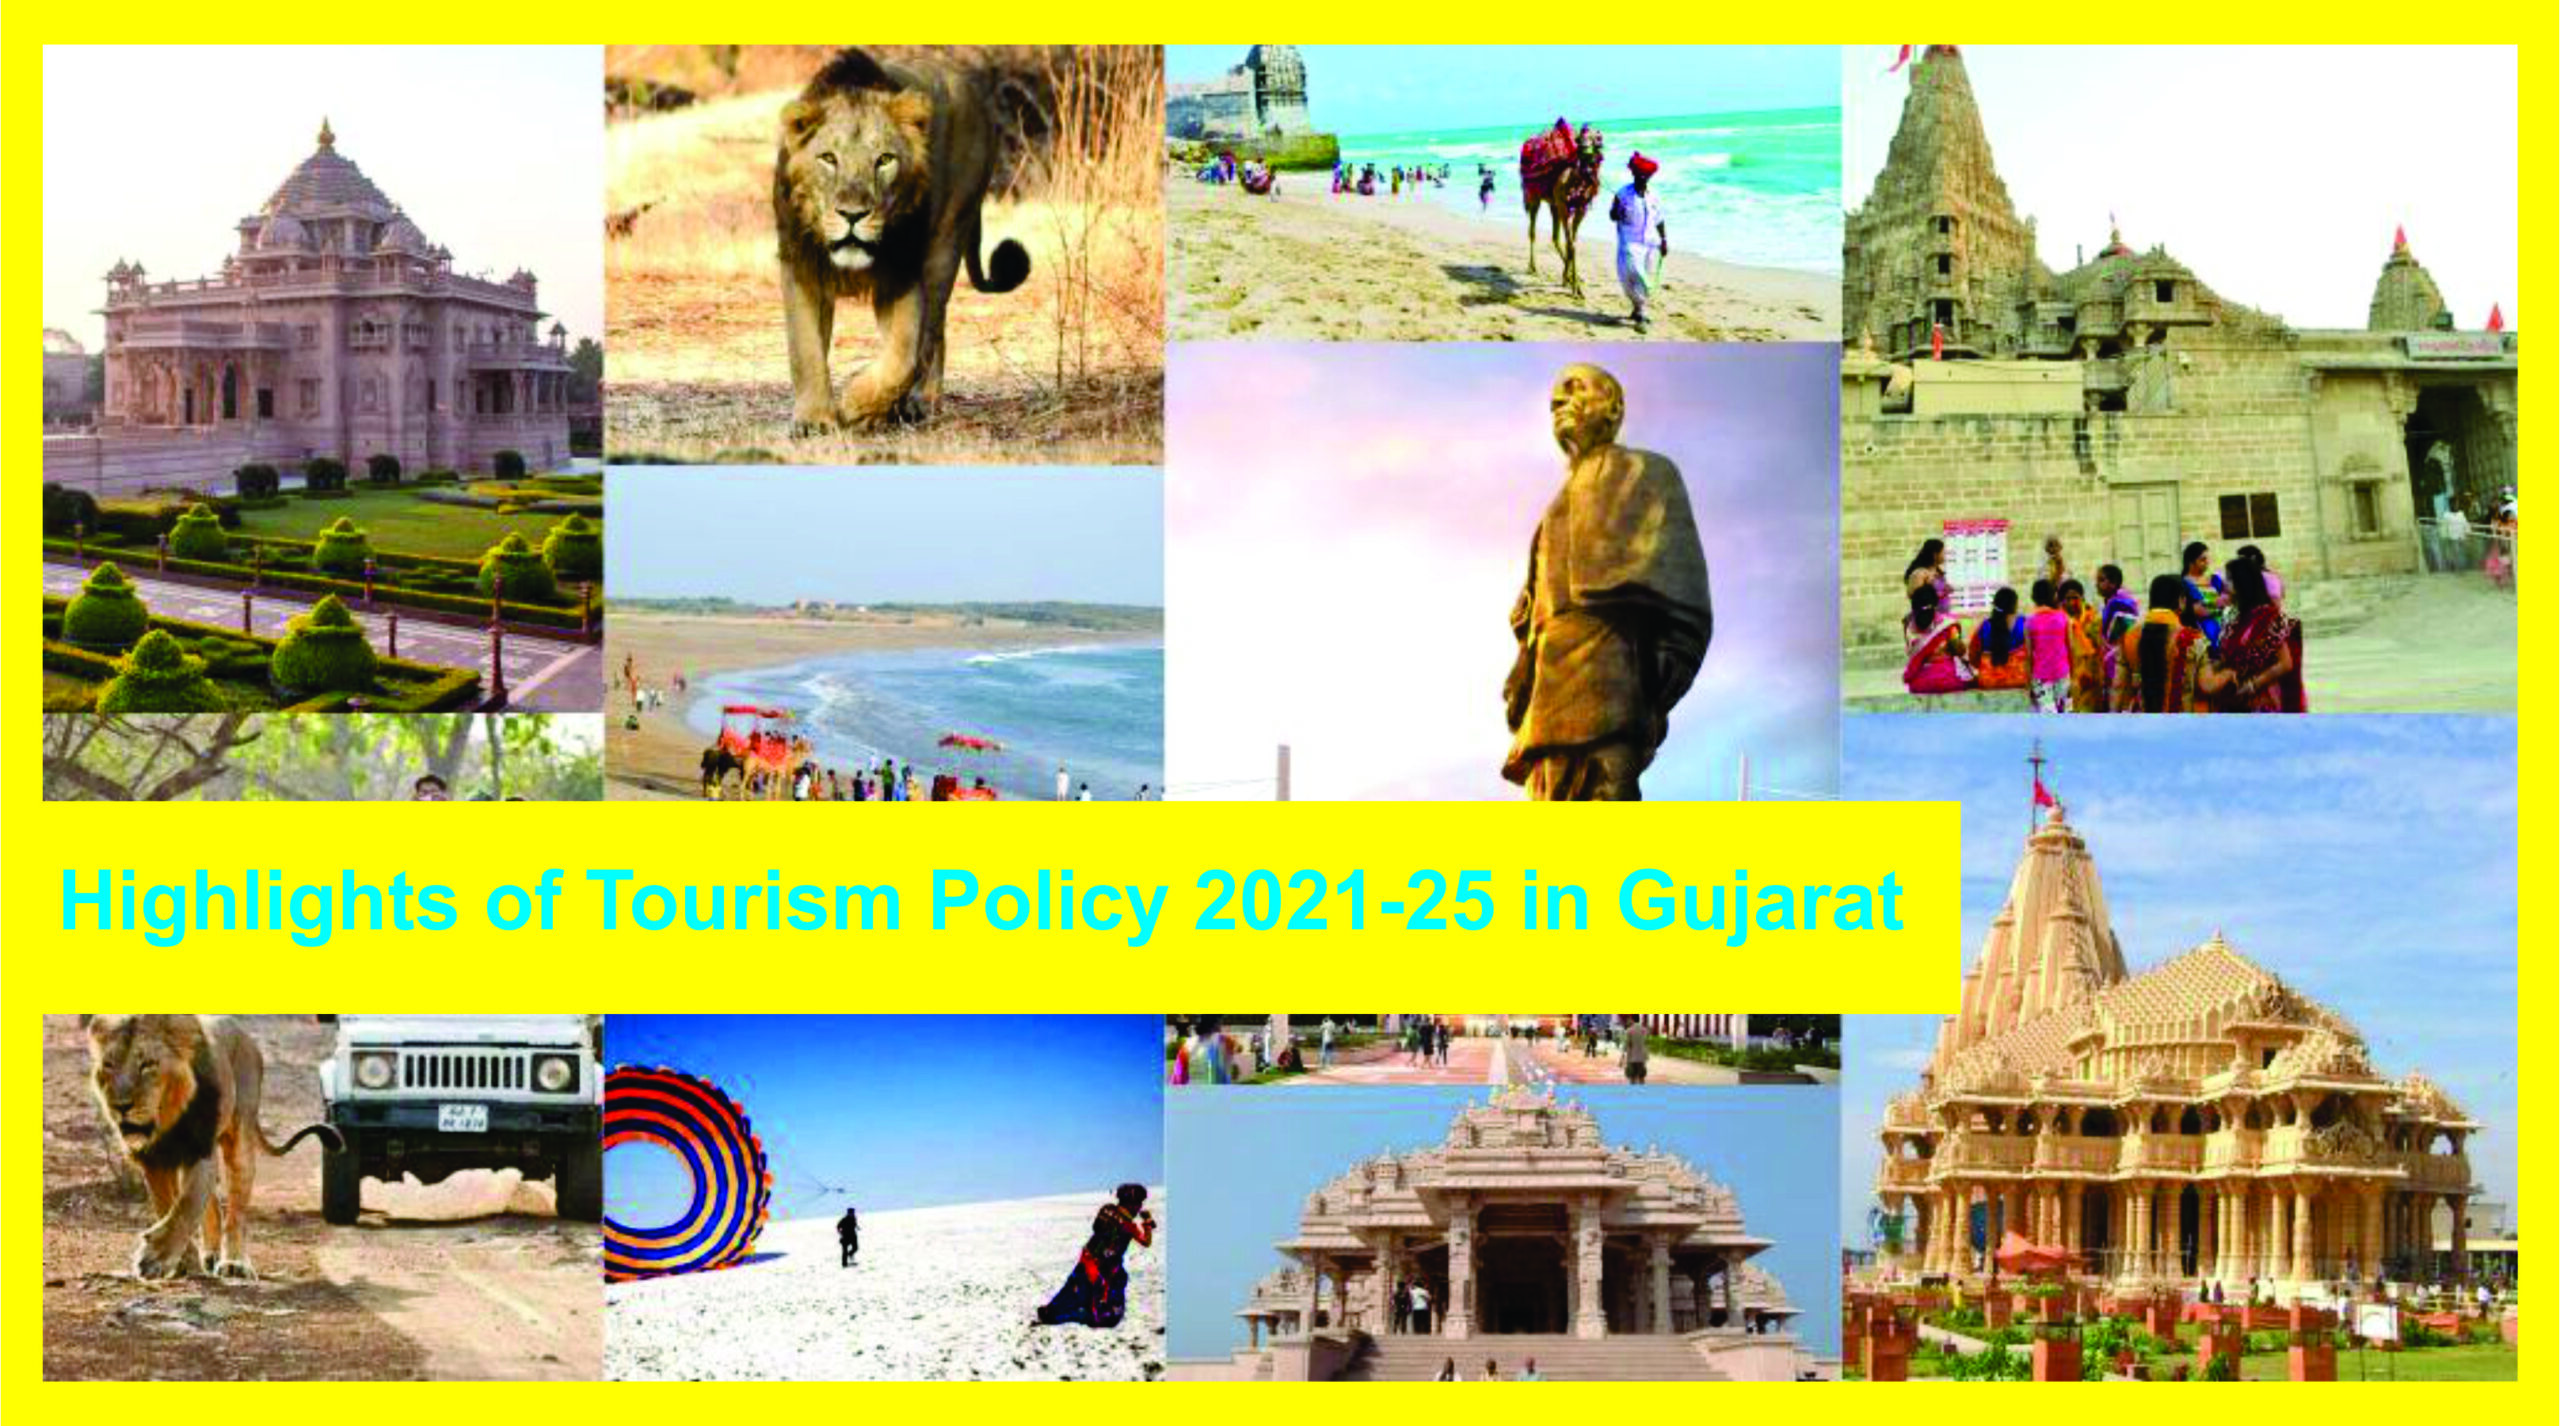 Tourism Policy 2021-25 in Gujarat